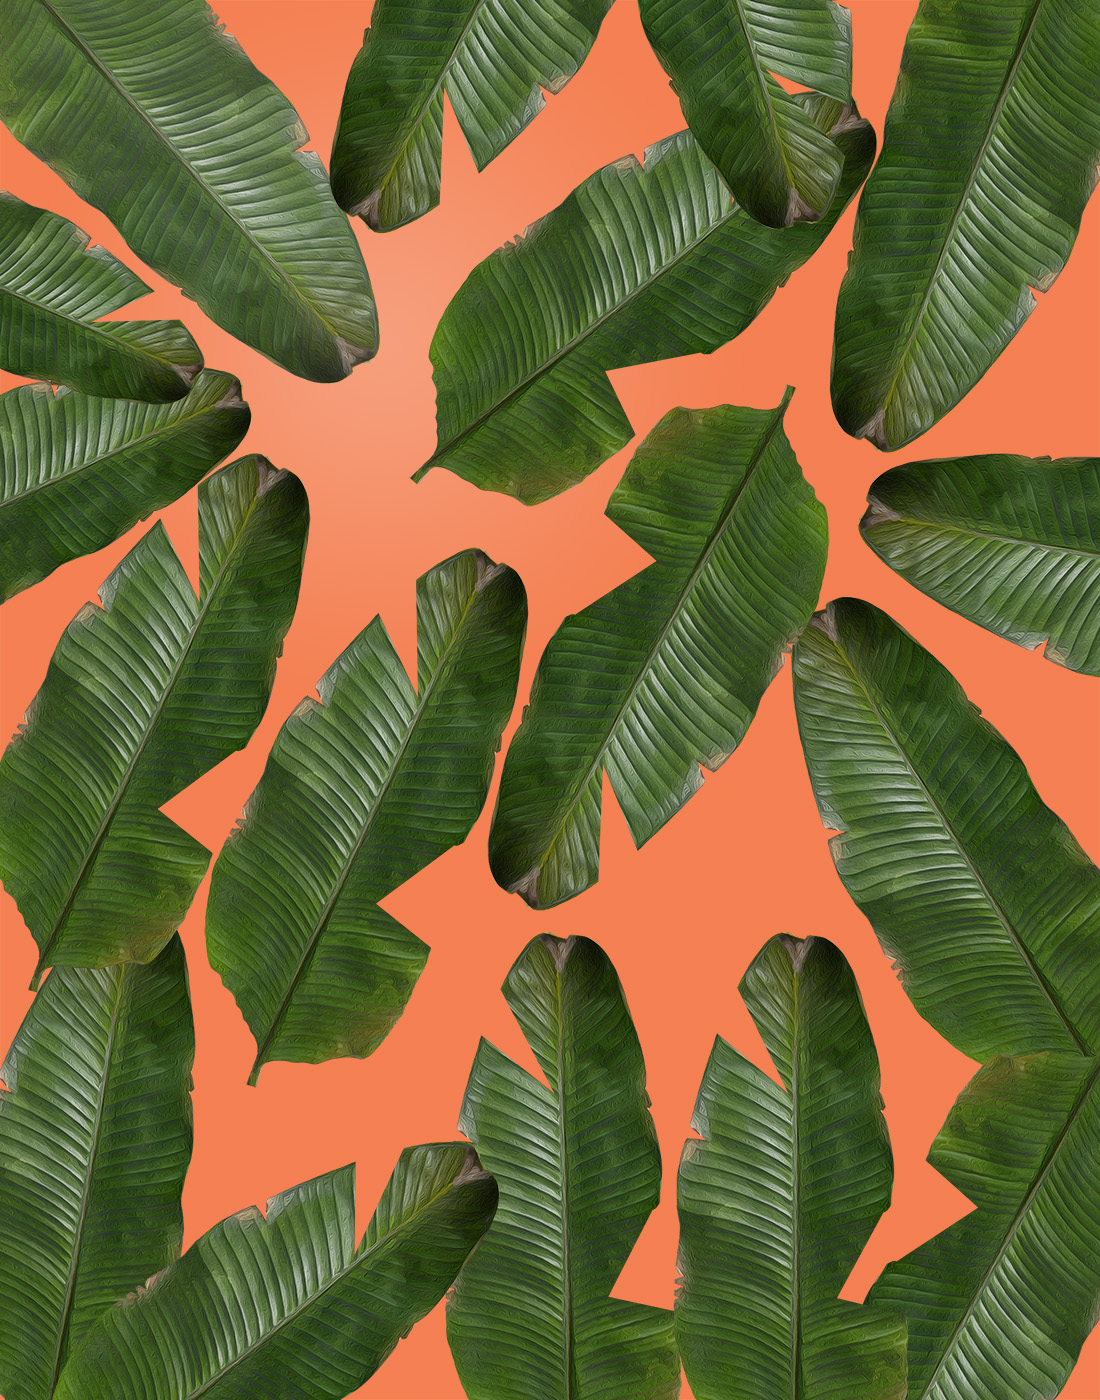 Banana Leaf Wallpaper Pattern Banana leaf print for sale 1100x1400